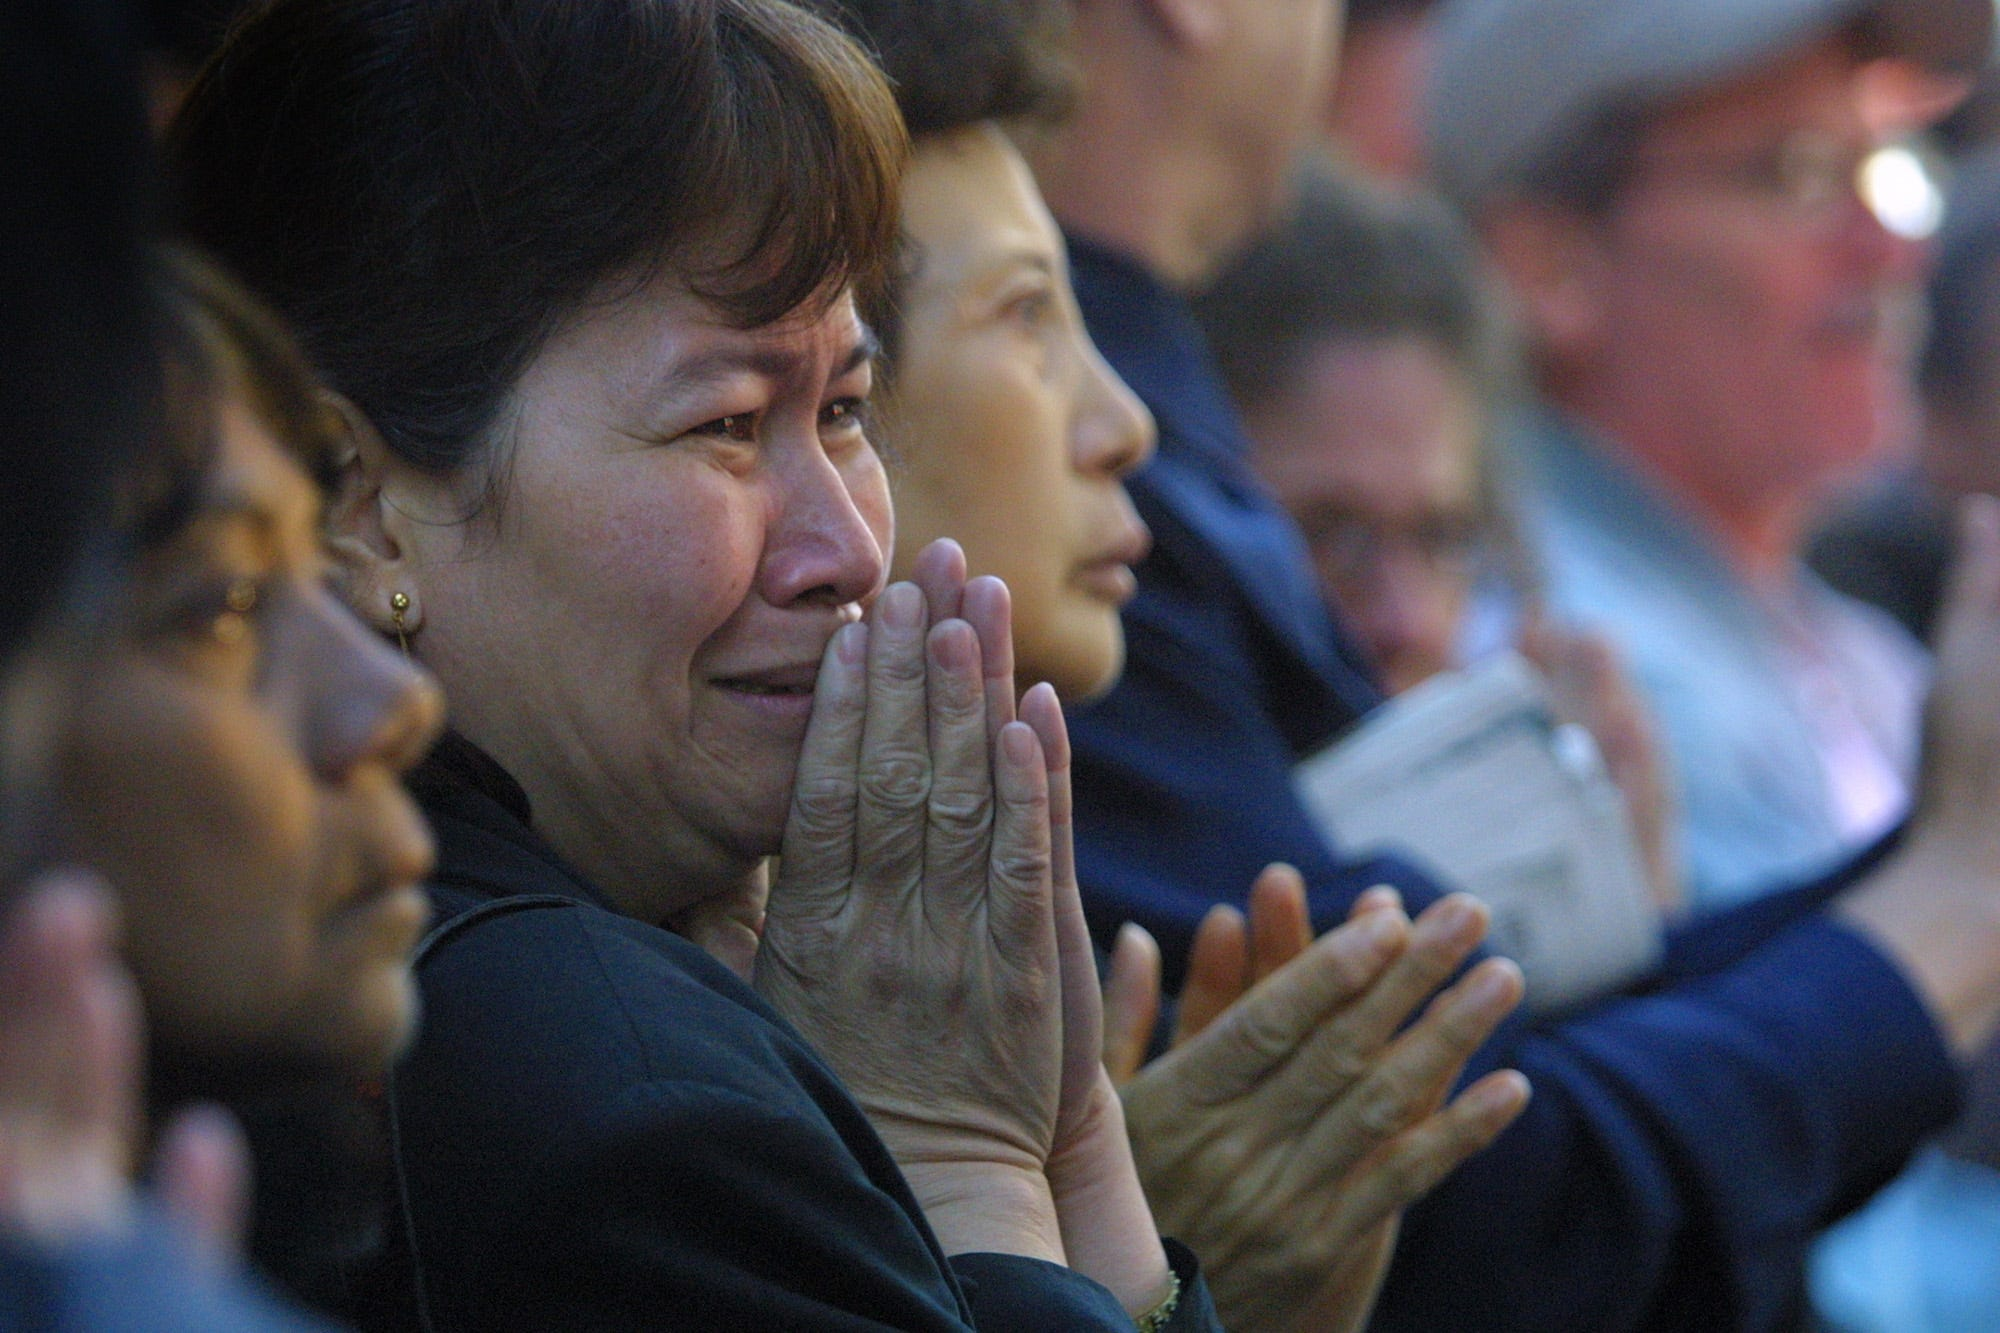 Onlookers weep at the casket of NYFD Chaplain Mychal Judge passes by following a funeral mass at St, Francis Cathedral on West 31st Street near 6th Ave. in NYC. Saturday, September 15, 2001.